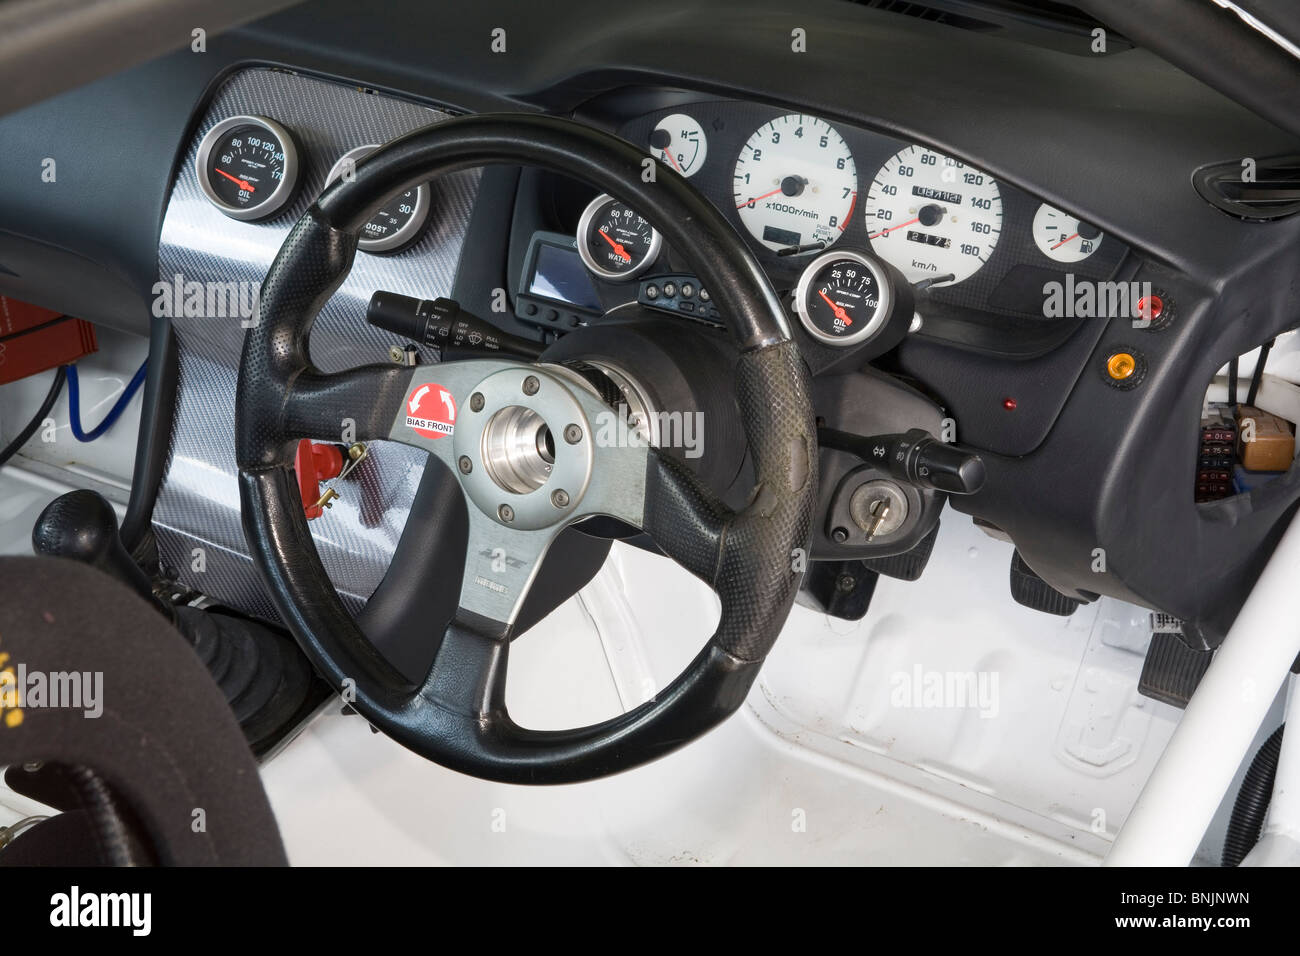 Cabin or cockpit of a circuit racing car Stock Photo